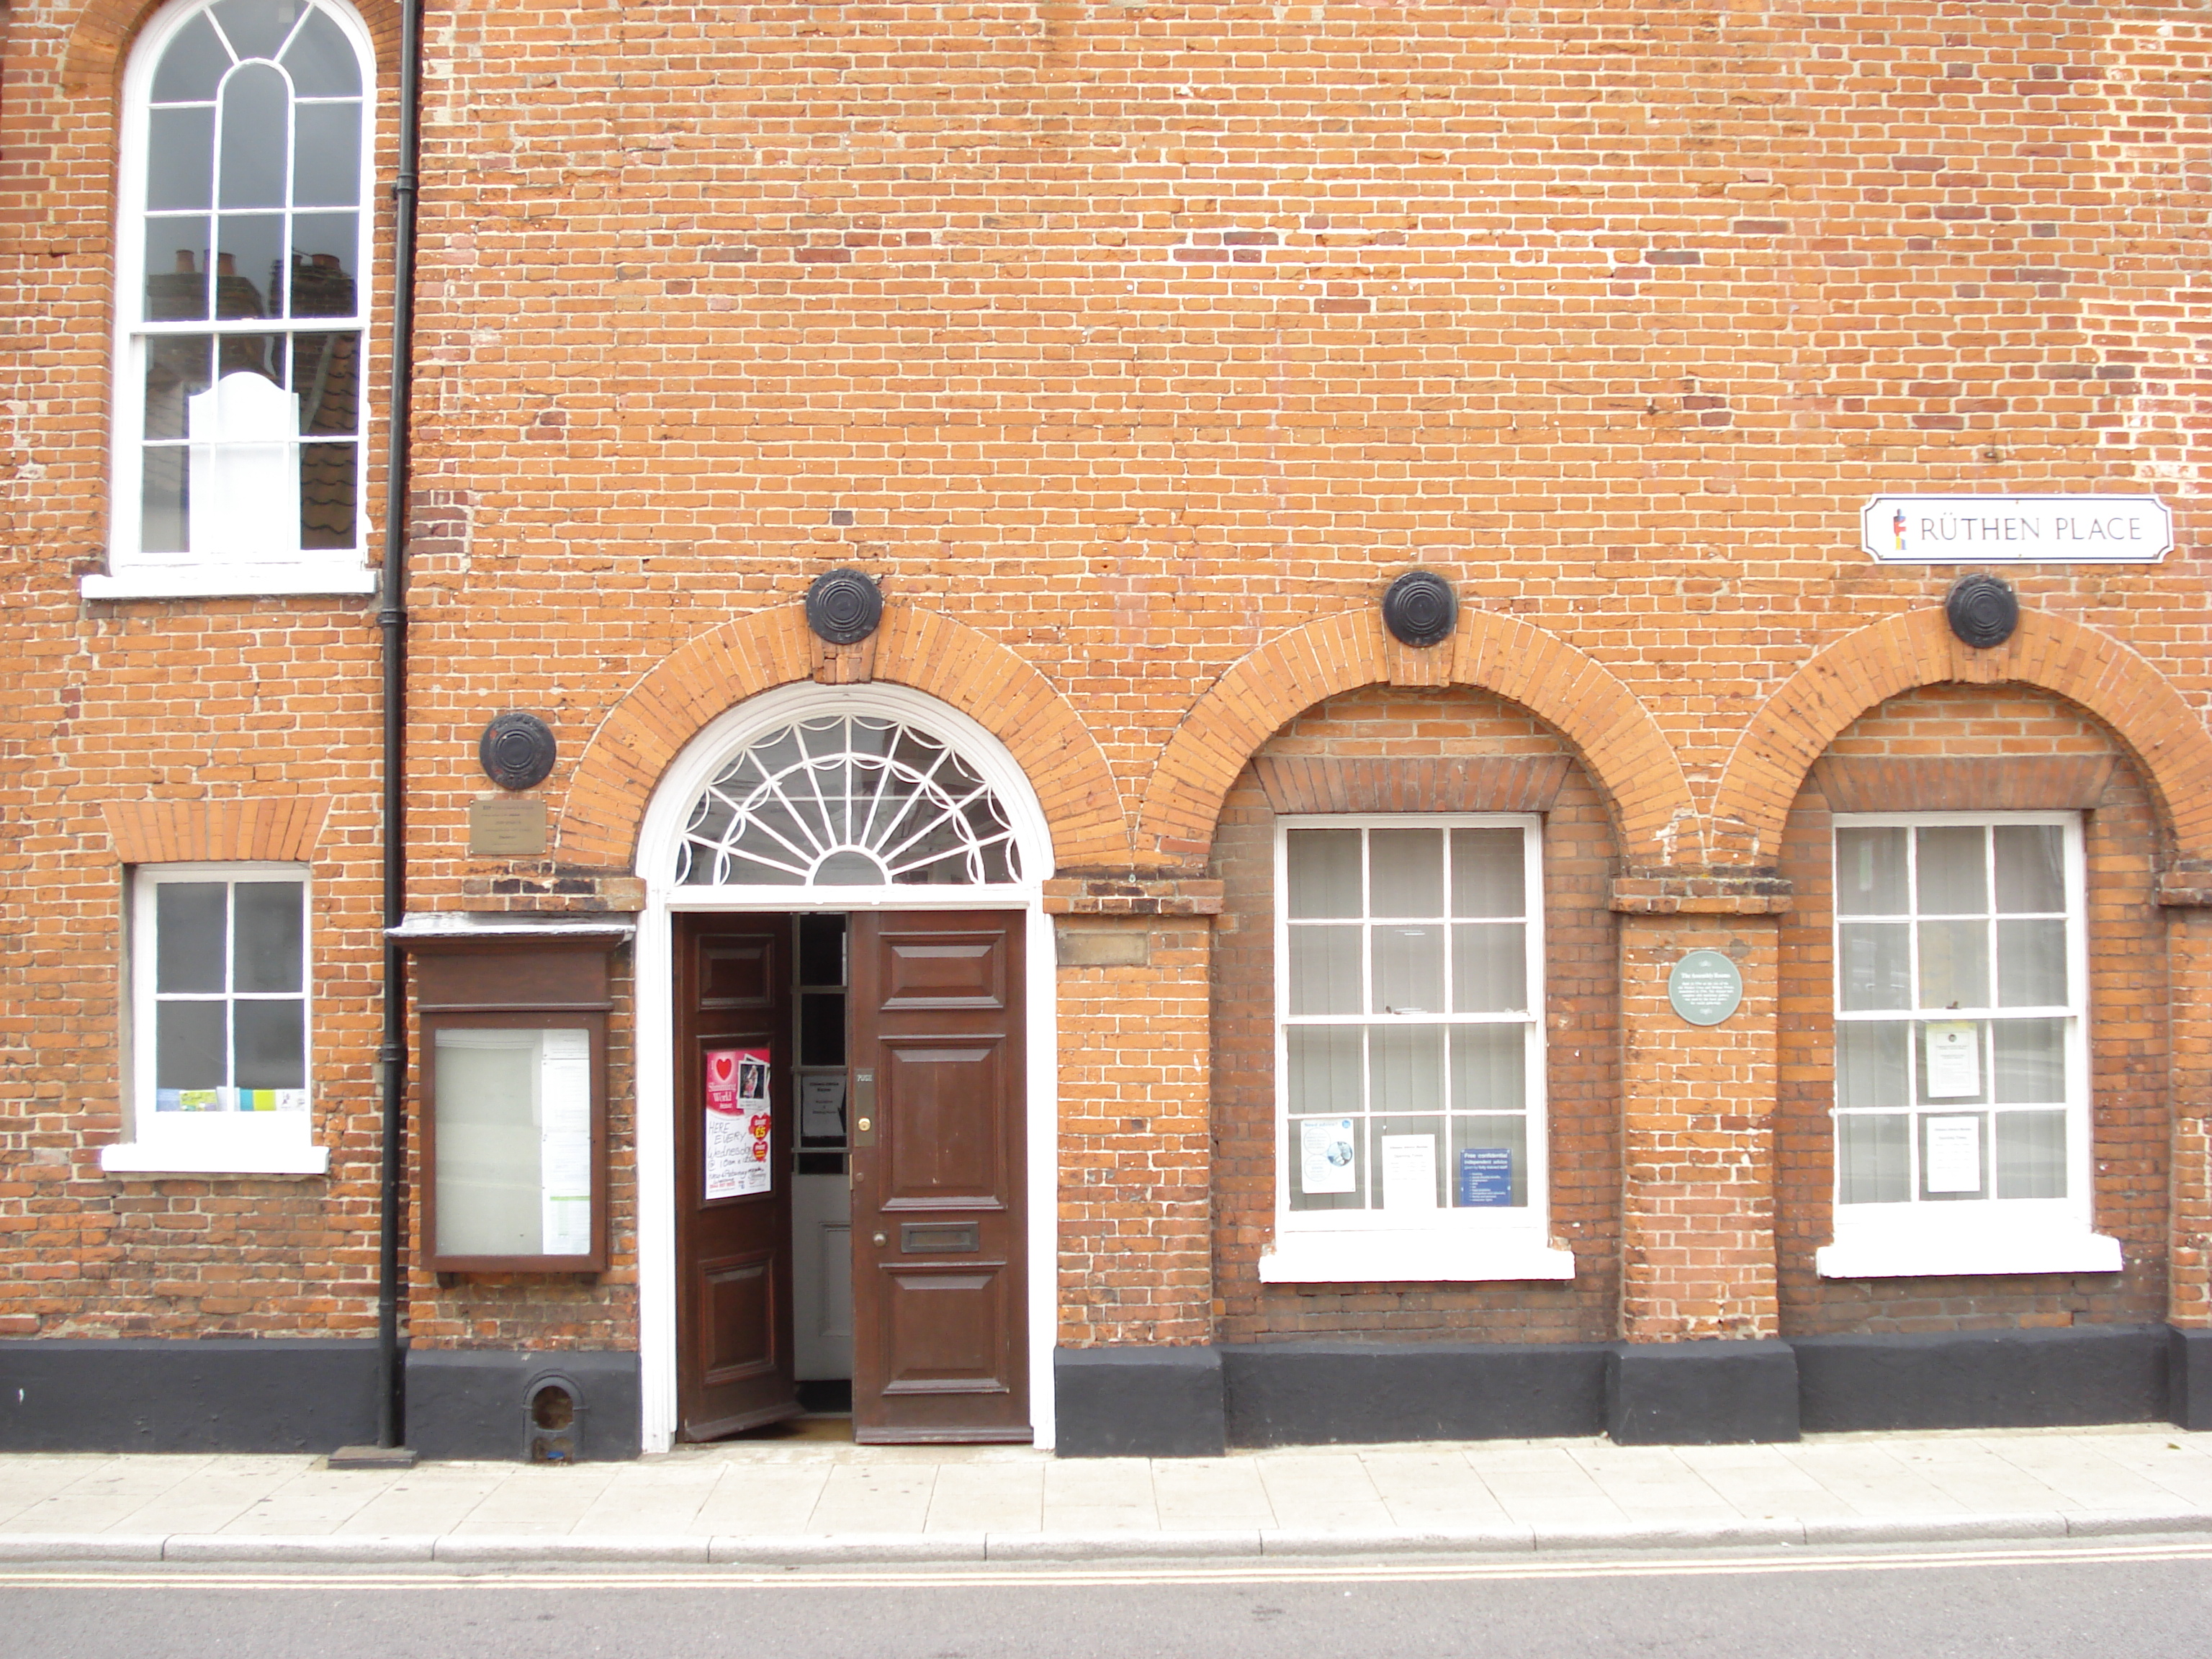 Entrance to the Assembly Rooms, Dereham